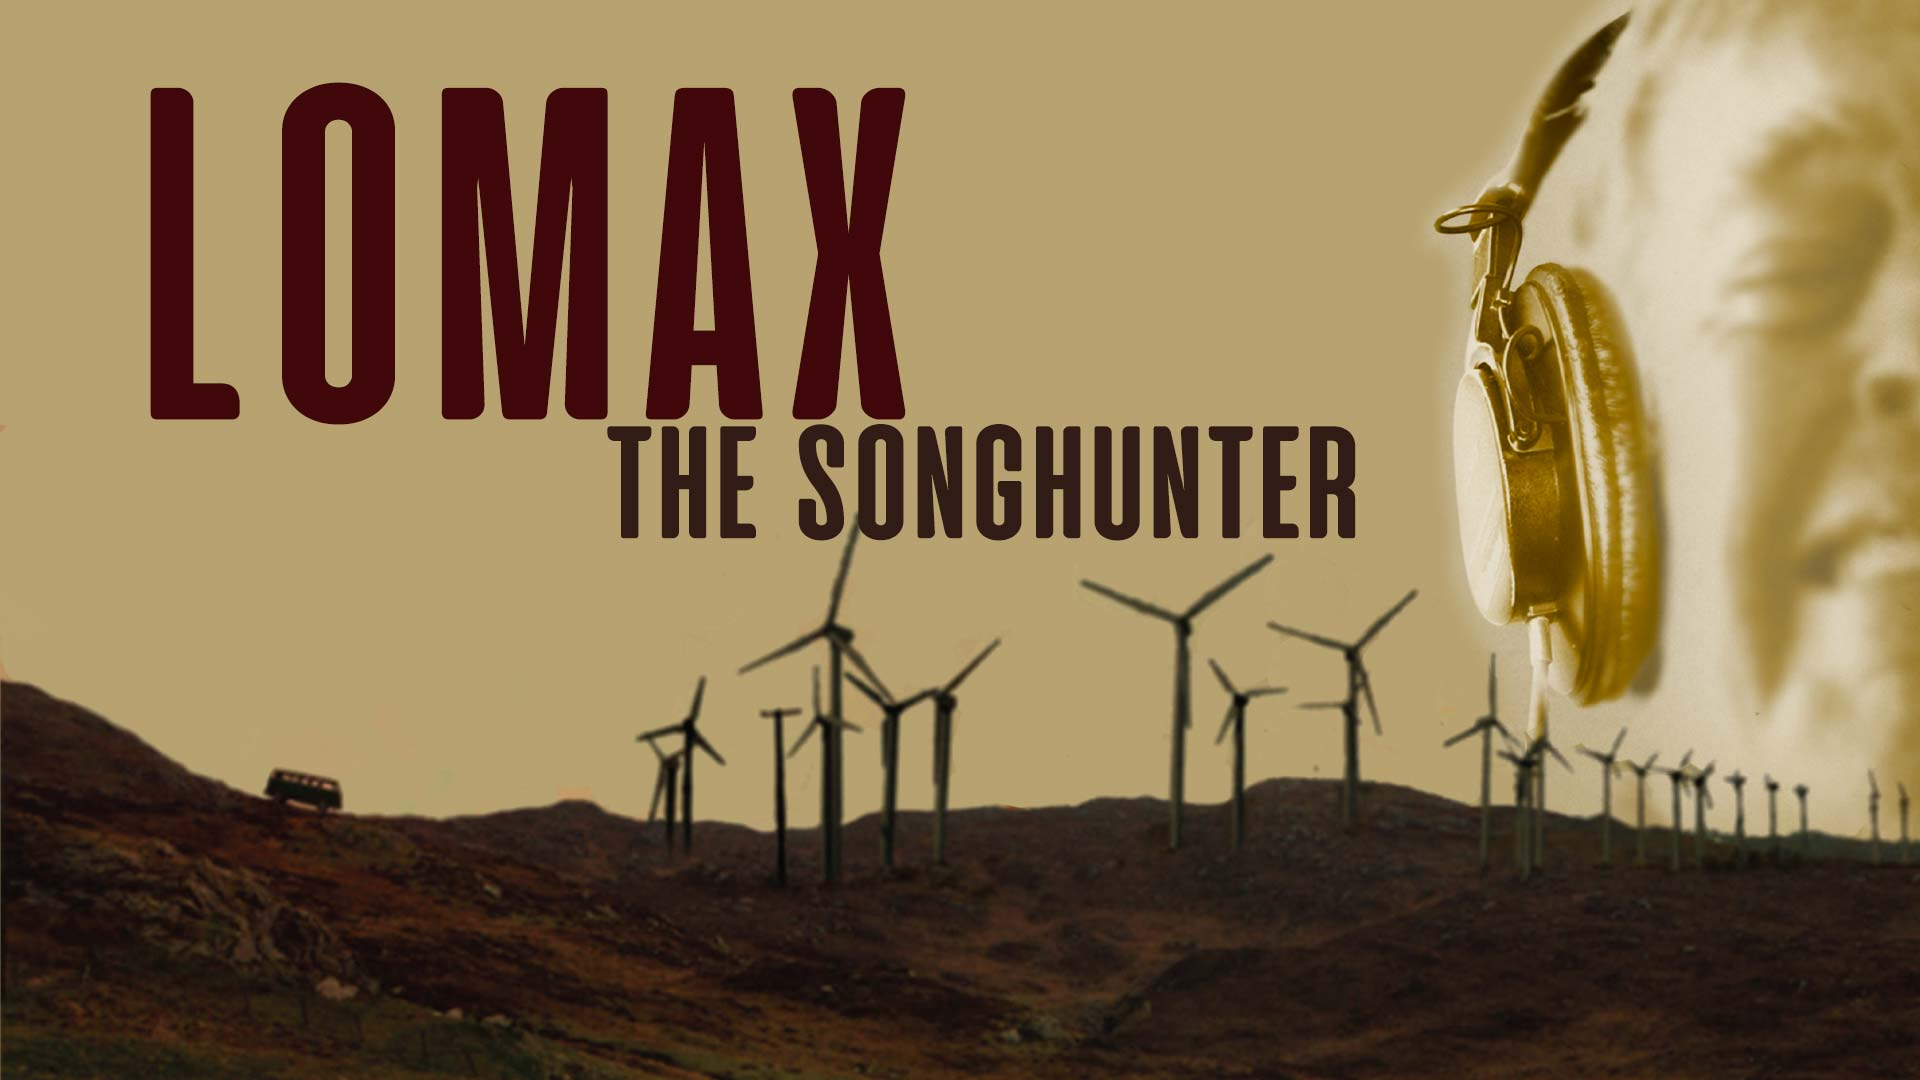 Lomax the Songhunter - image